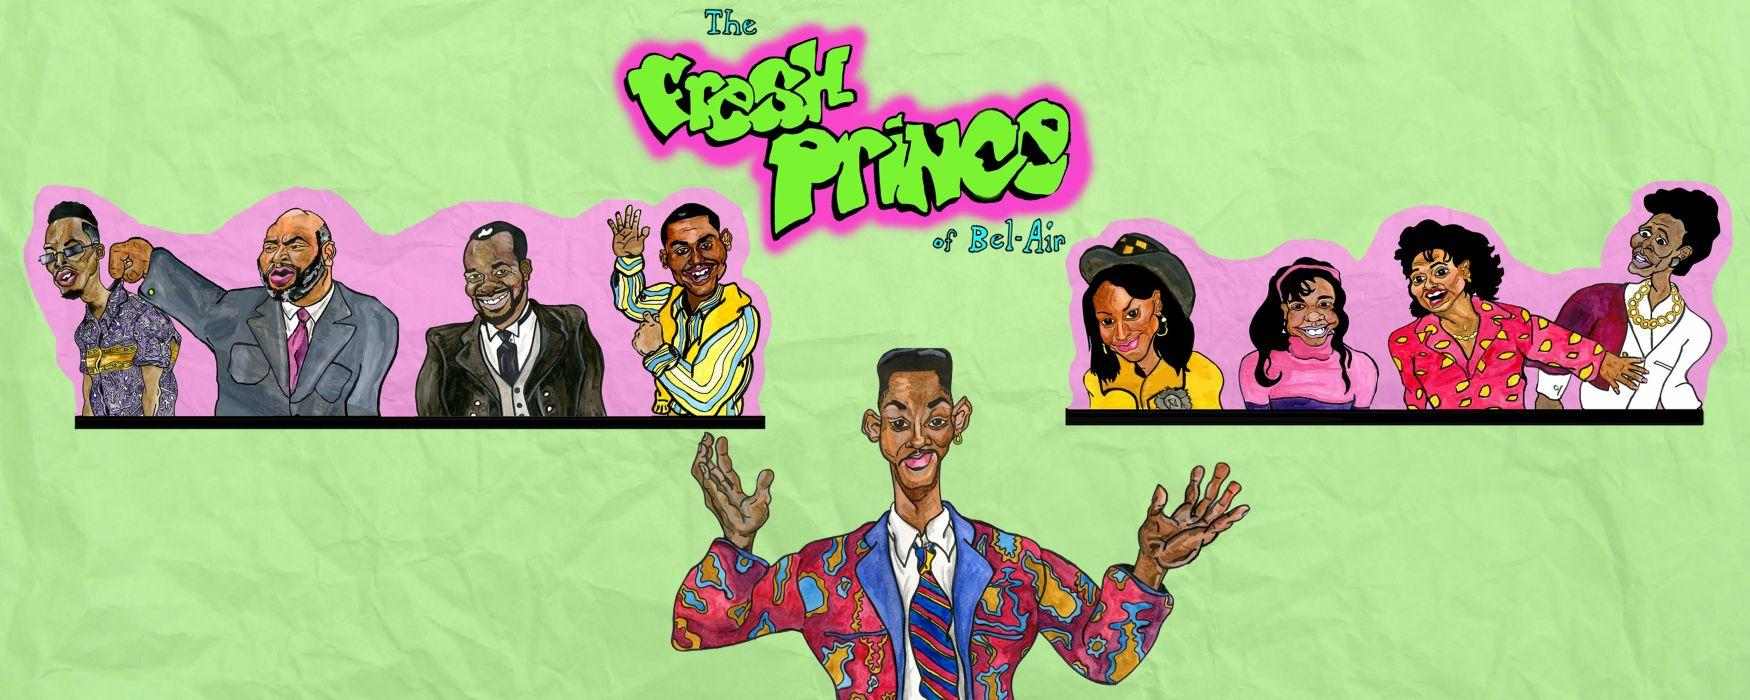 The Fresh Prince Of Bel Air Wallpapers Wallpaper Cave